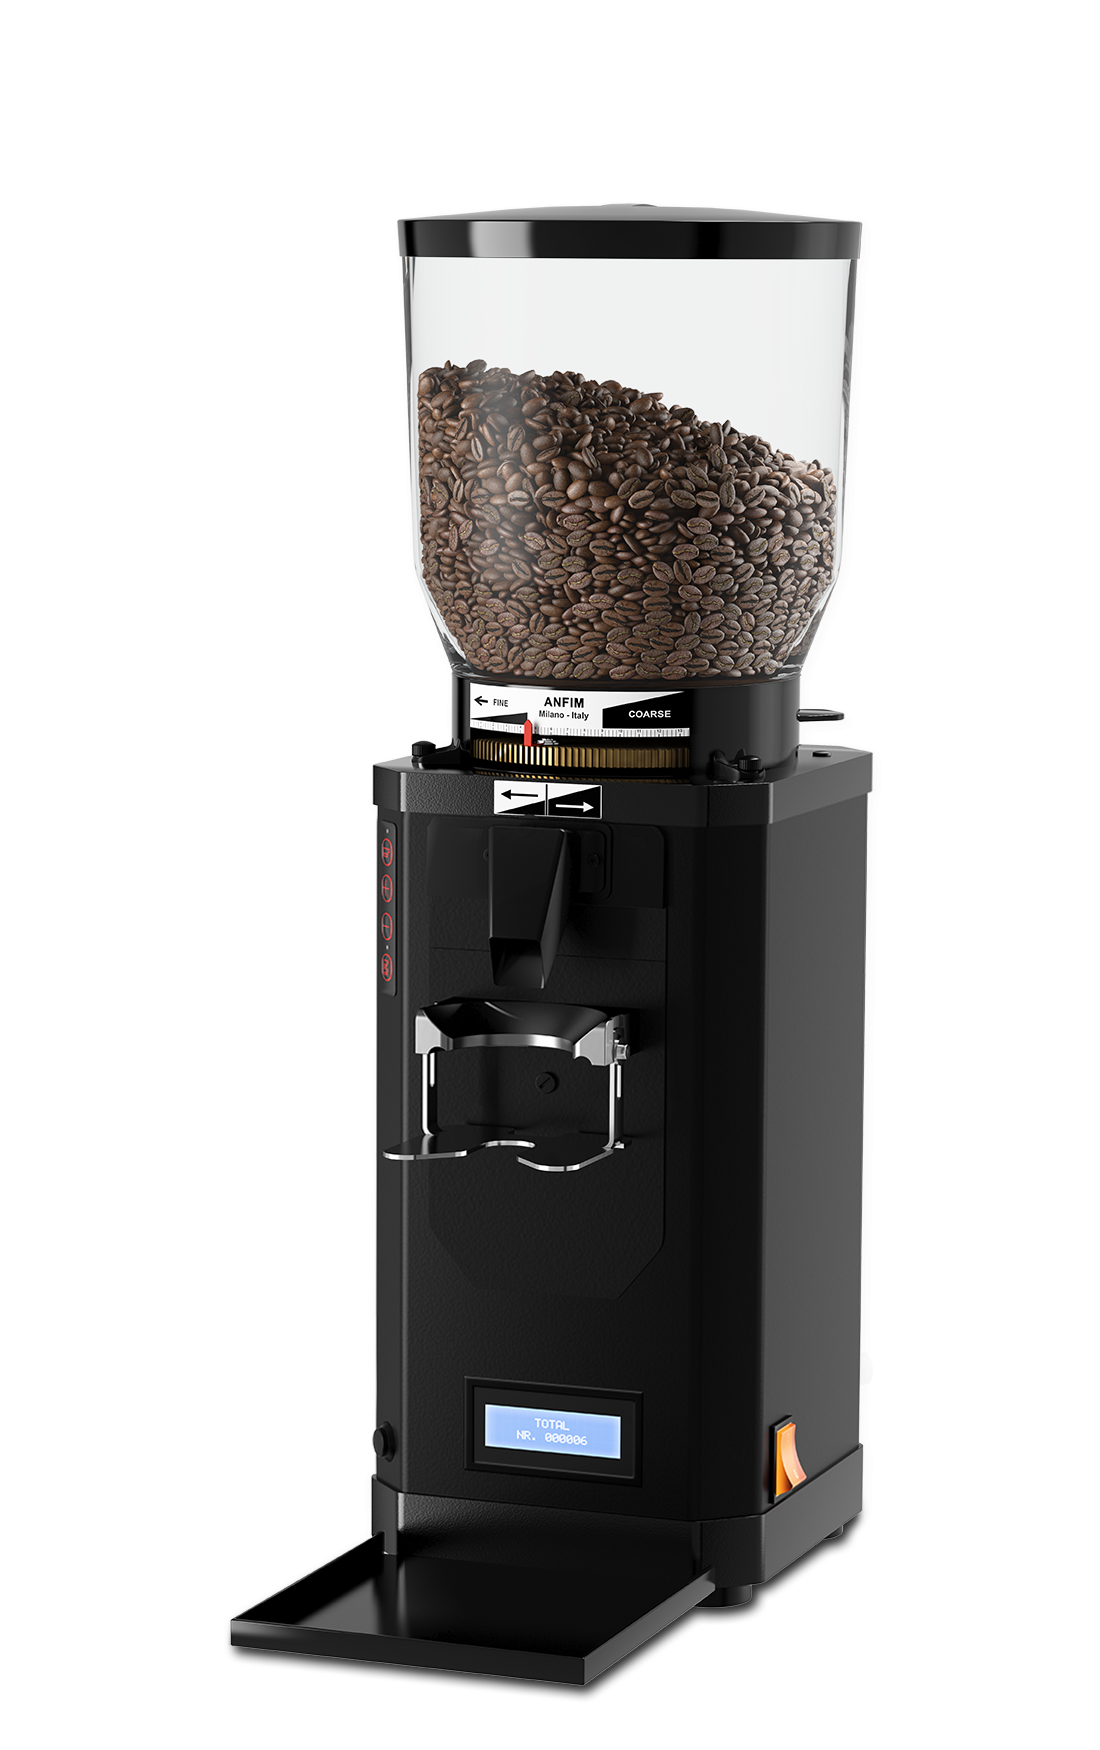 Anfim Super Caimano On Demand macinacaffe' espresso